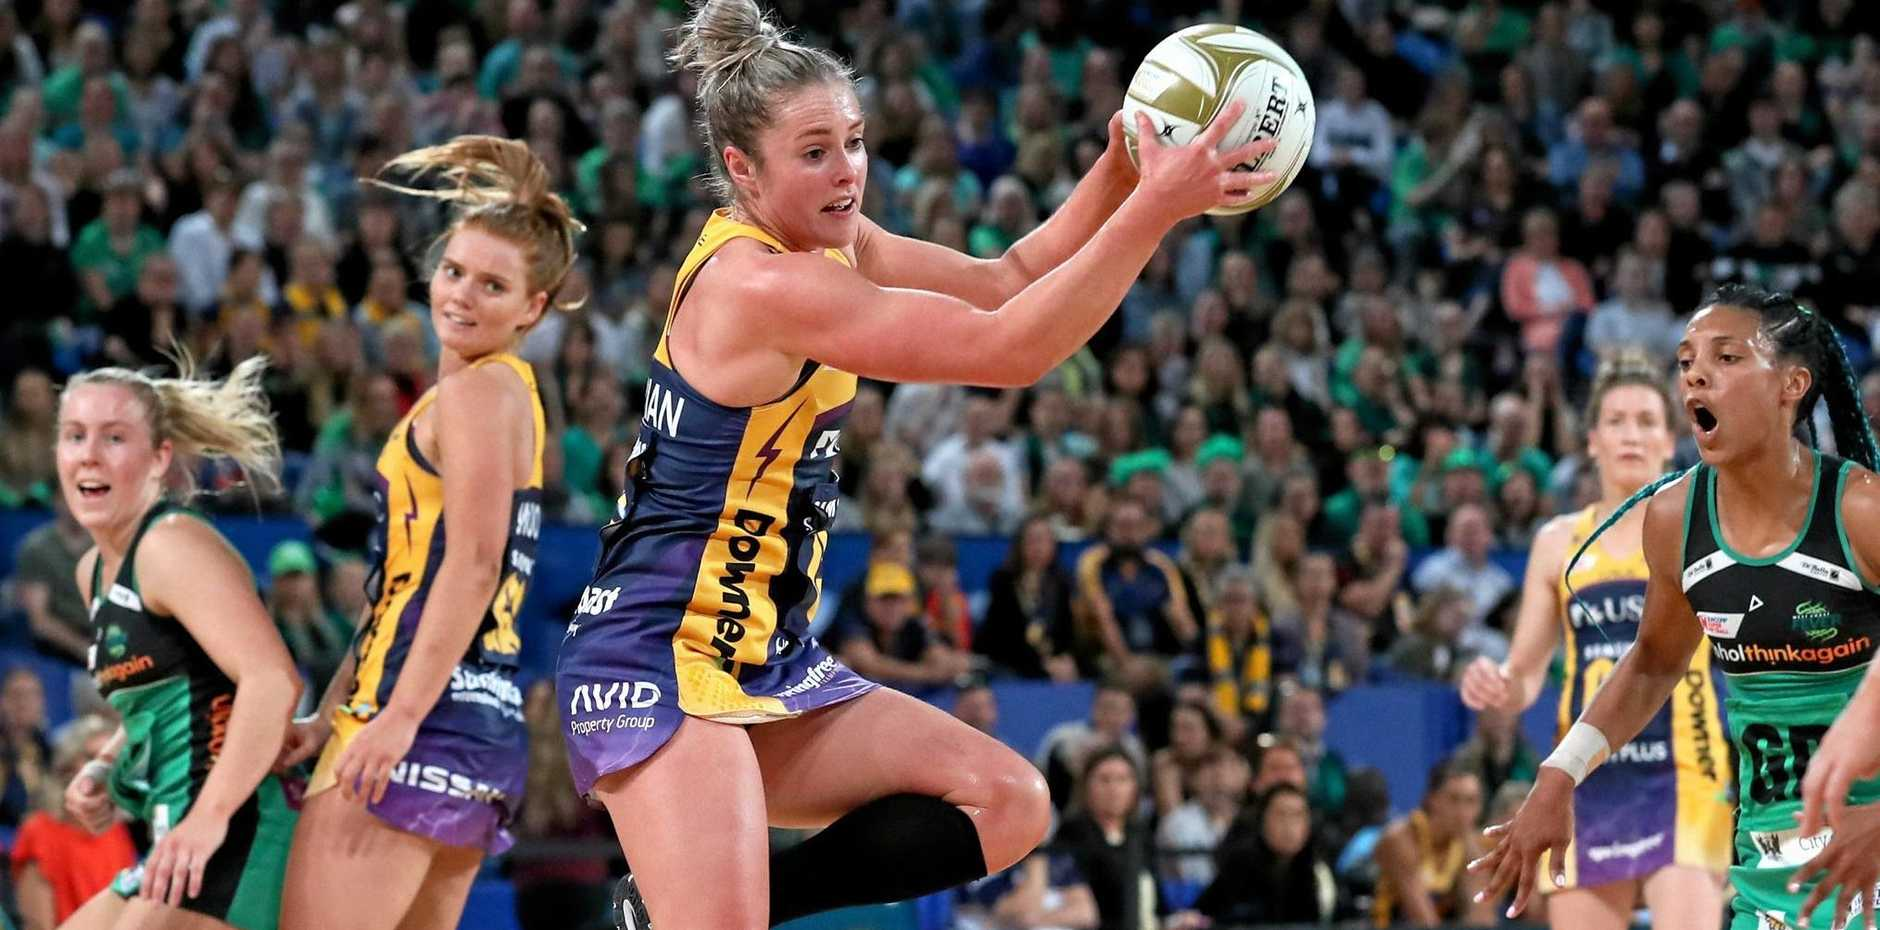 Laura Scherian of the Lightning (centre) catches the ball during the Super Netball Grand Final between the West Coast Fever and the Sunshine Coast Lightning at Perth Arena in Perth, Sunday, August 26, 2018. (AAP Image/Richard Wainwright) NO ARCHIVING, EDITORIAL USE ONLY